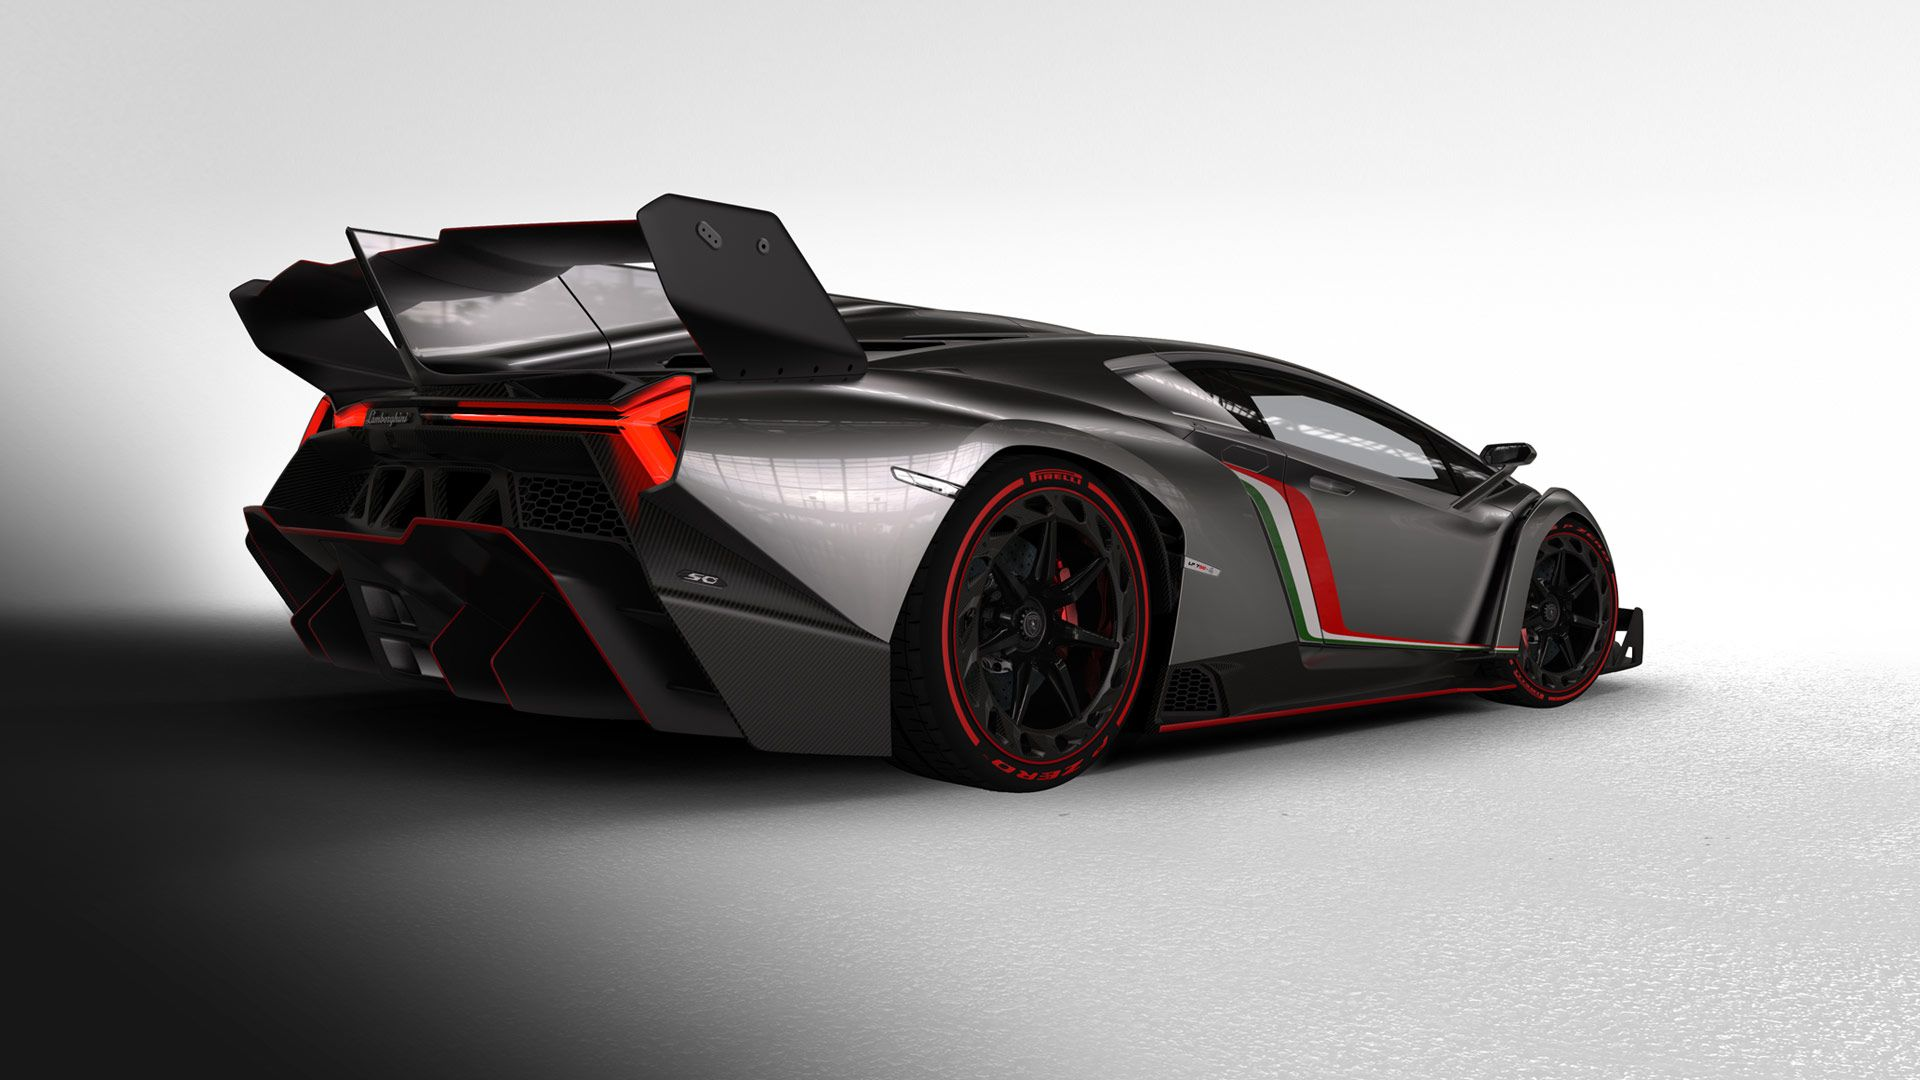 Merveilleux With Power And Jaw Dropping Styling, The New Lamborghini Veneno Supercar Is  One Of The Most Stunning And Evocative At The Geneva Auto Show, Writes  Autoweek ...